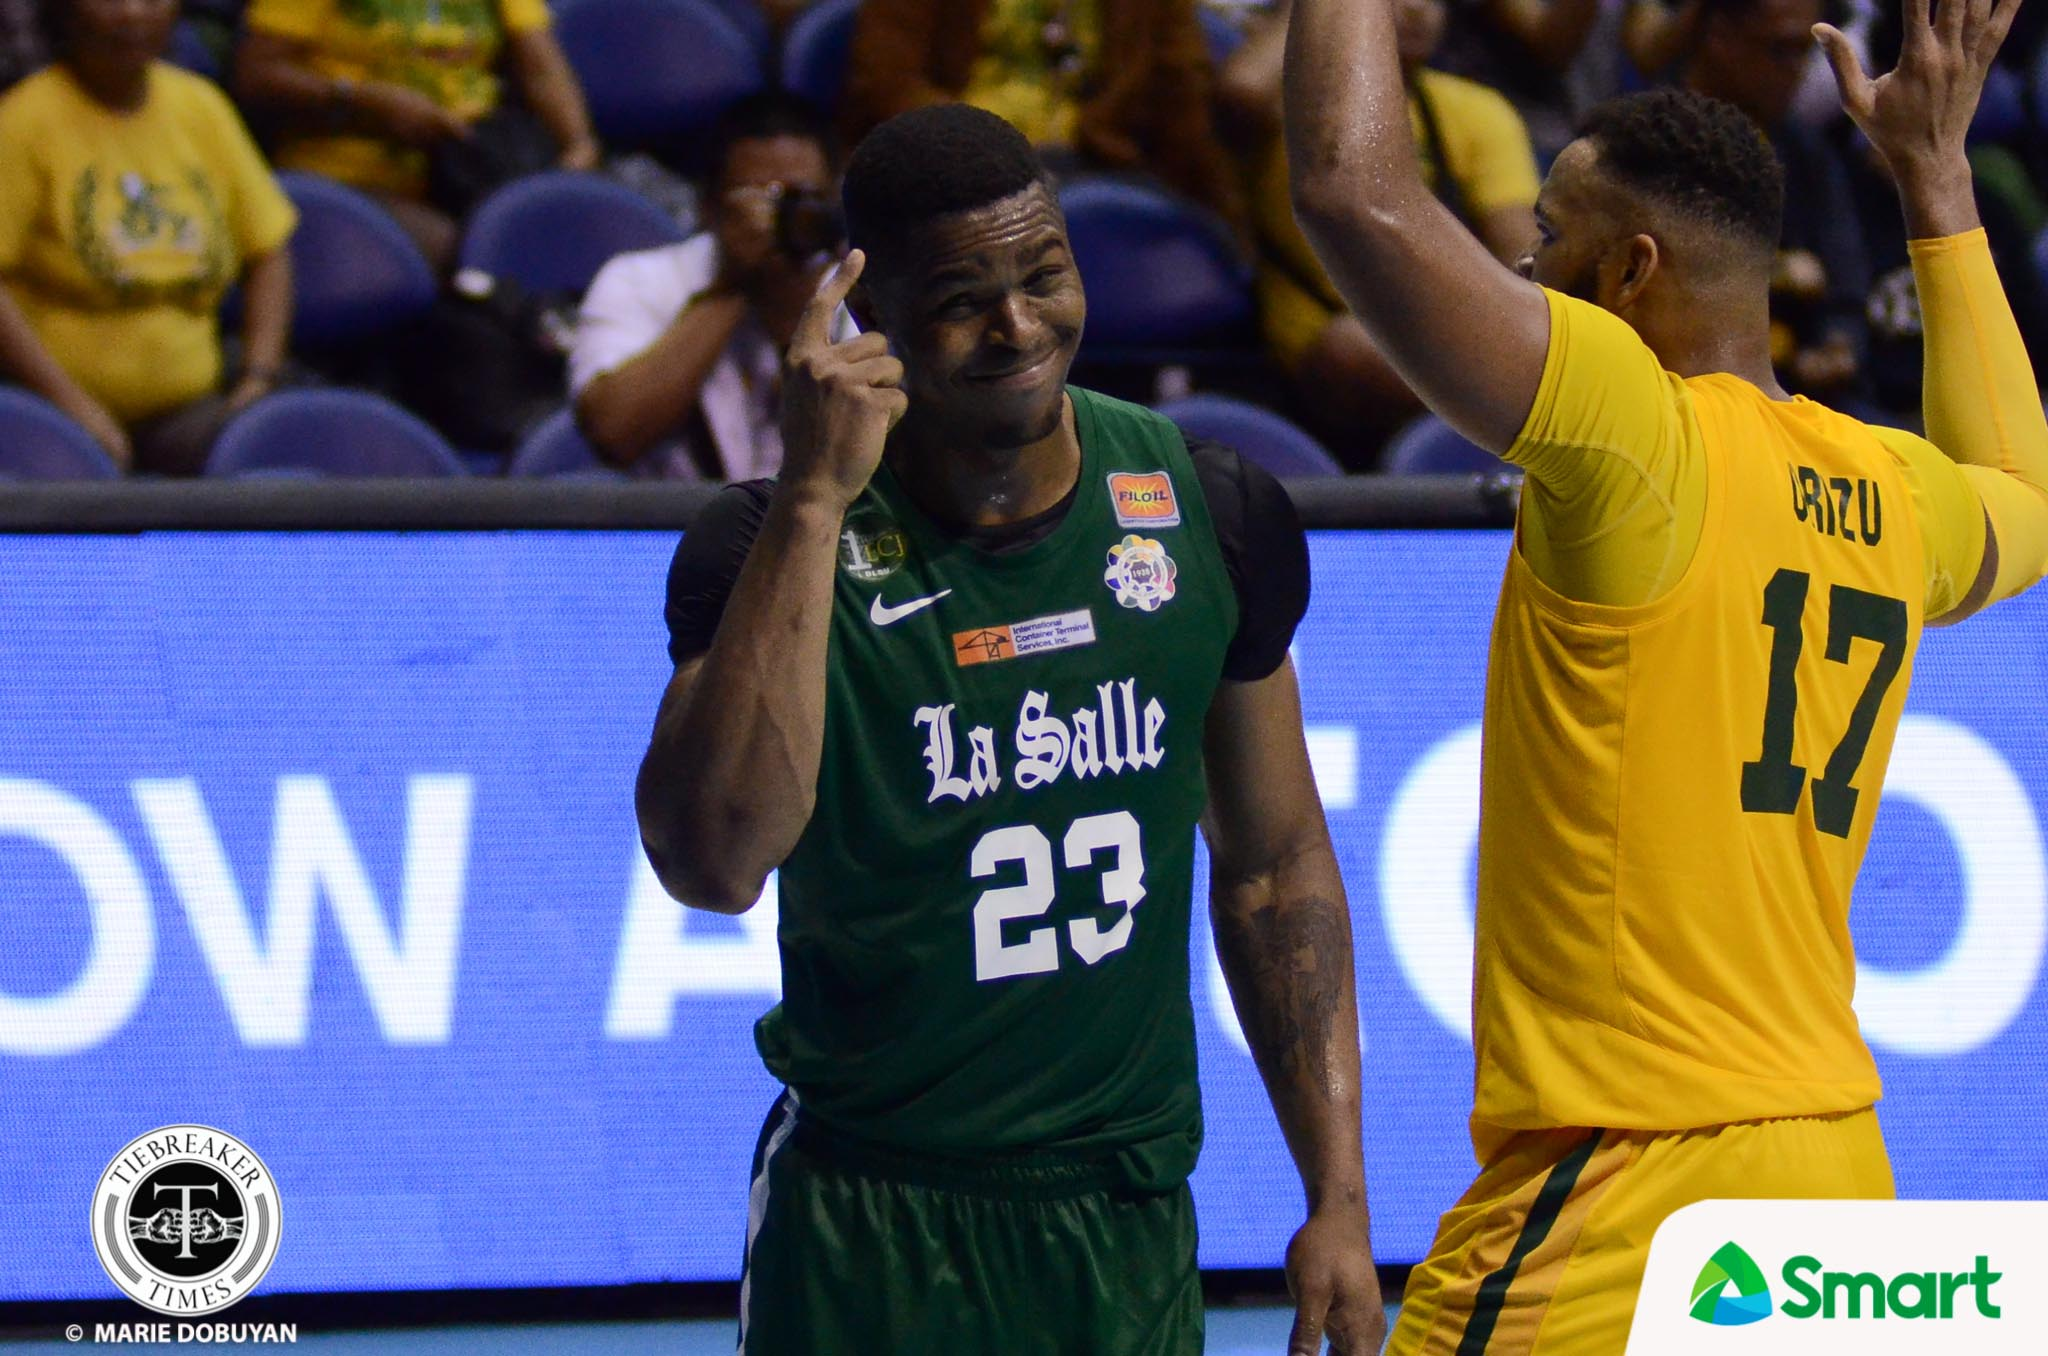 Philippine Sports News - Tiebreaker Times Ben Mbala shrugs off online outburst to impending second MVP Basketball DLSU News UAAP  UAAP Season 80 Men's Basketball UAAP Season 80 DLSU Men's Basketball Ben Mbala